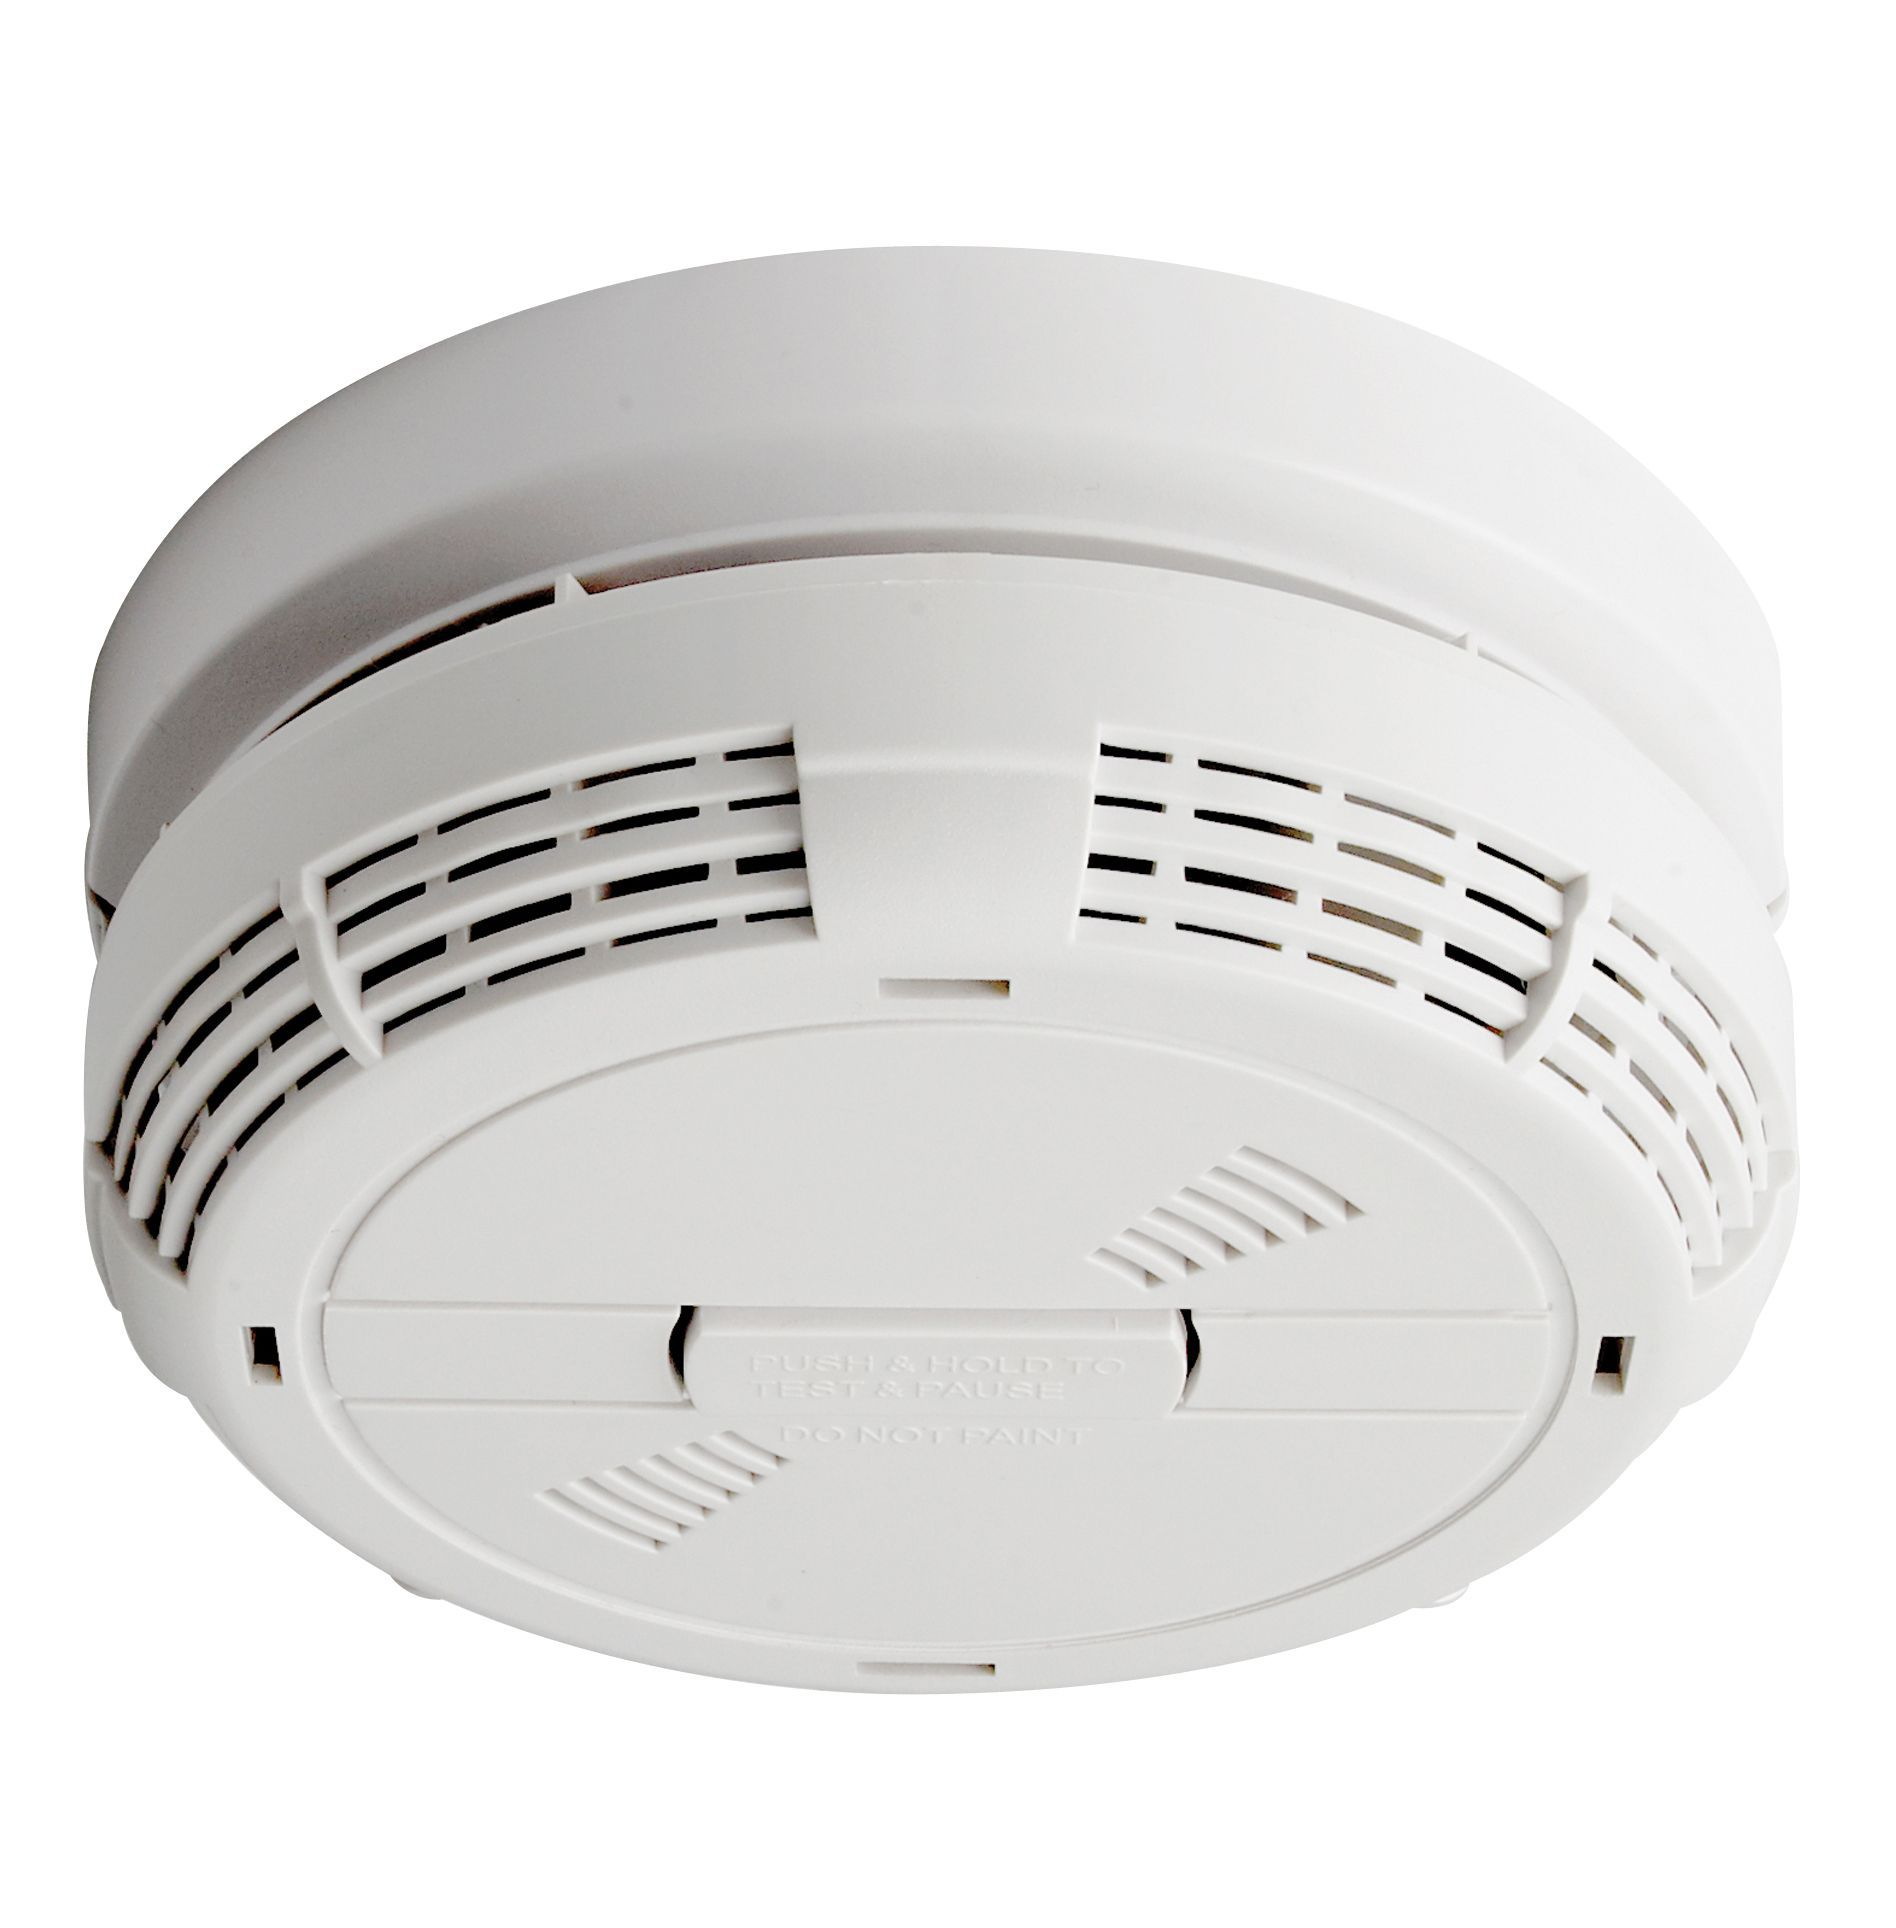 kitchen smoke detector touch on faucet fireangel optical mains powered alarm departments